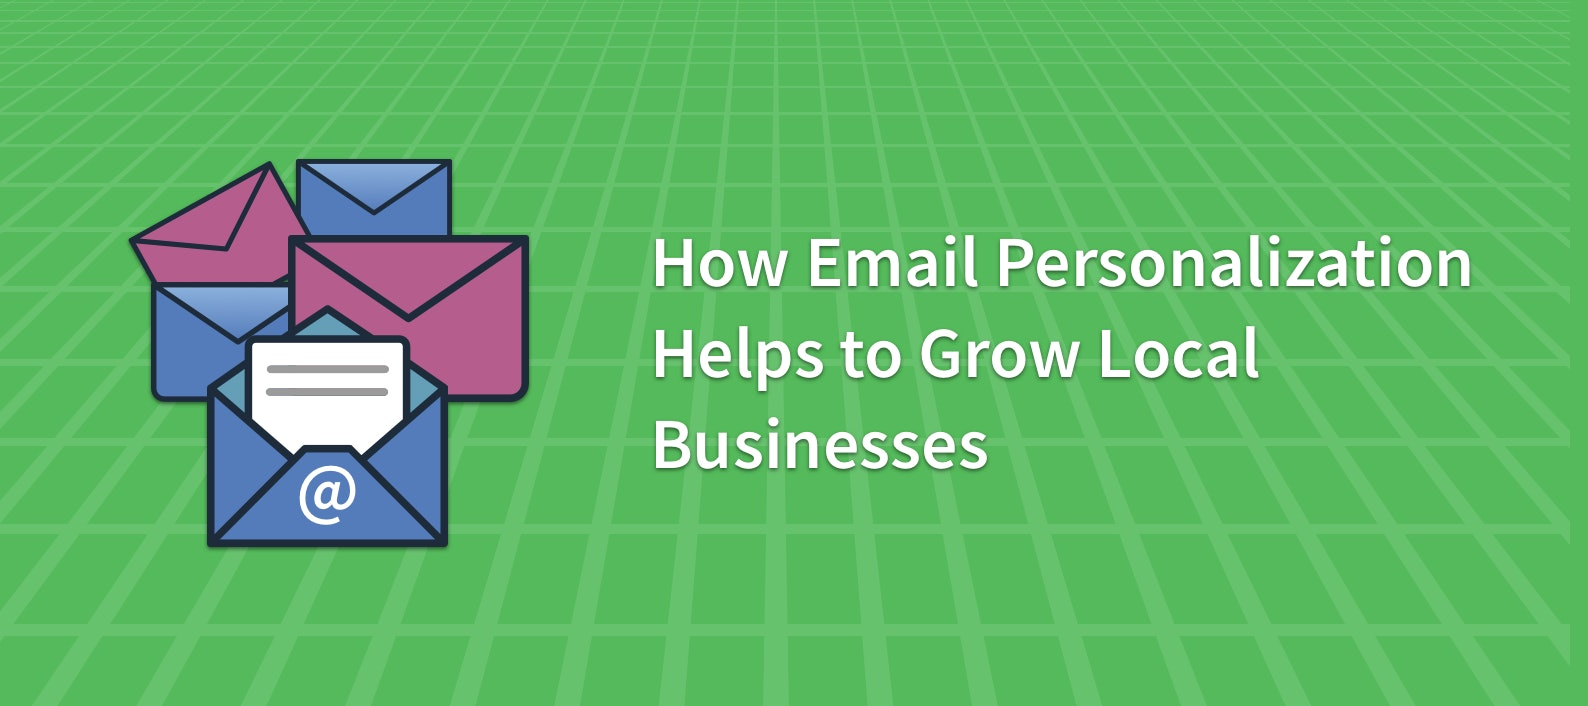 How Email Personalization Helps to Grow Local Businesses